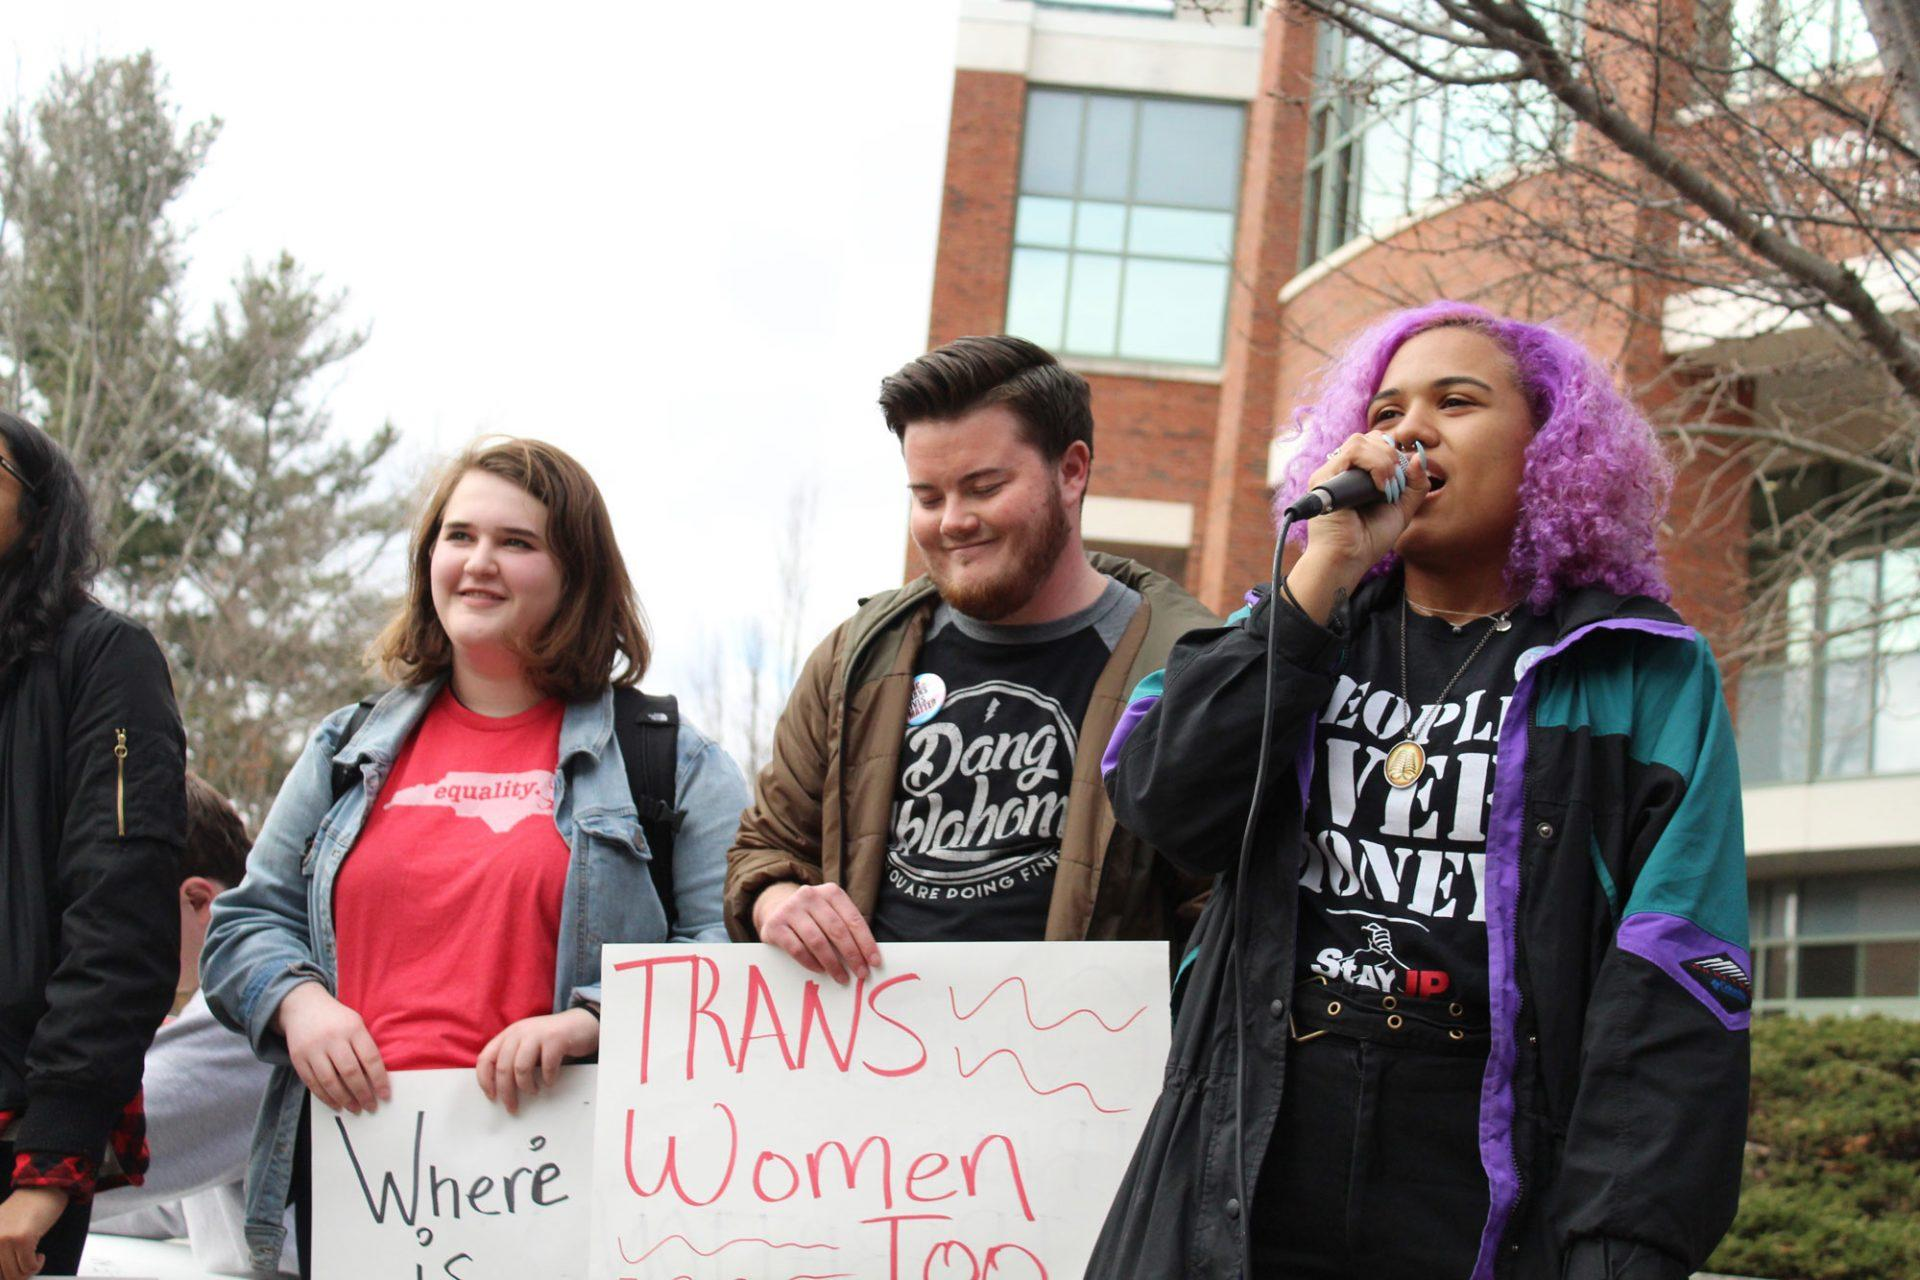 Avery Walters and other students meeting outside between the student union and the library to protest Speaker Michael Brown on Tuesday at 2pm.